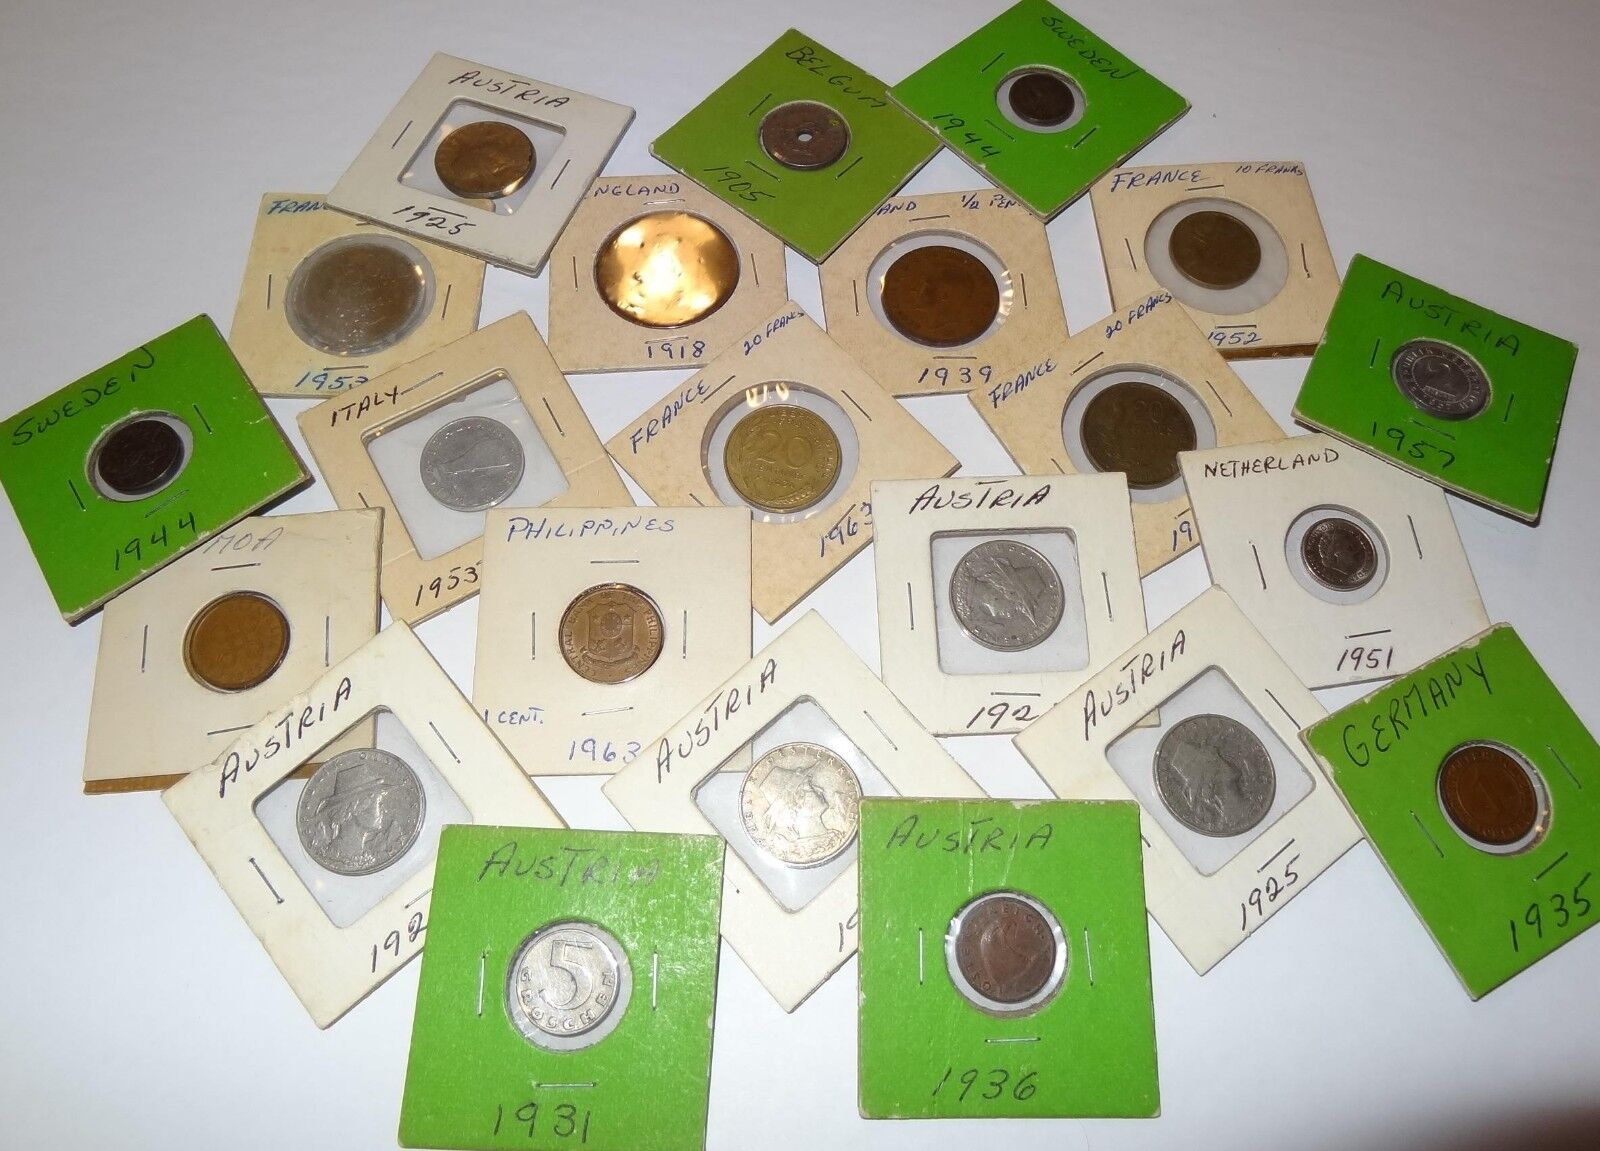 FOREIGN COIN COLLECTION, 22 VINTAGE WORLD COINS, EUROPE, PACIFIC, ANTIQUE MONEY